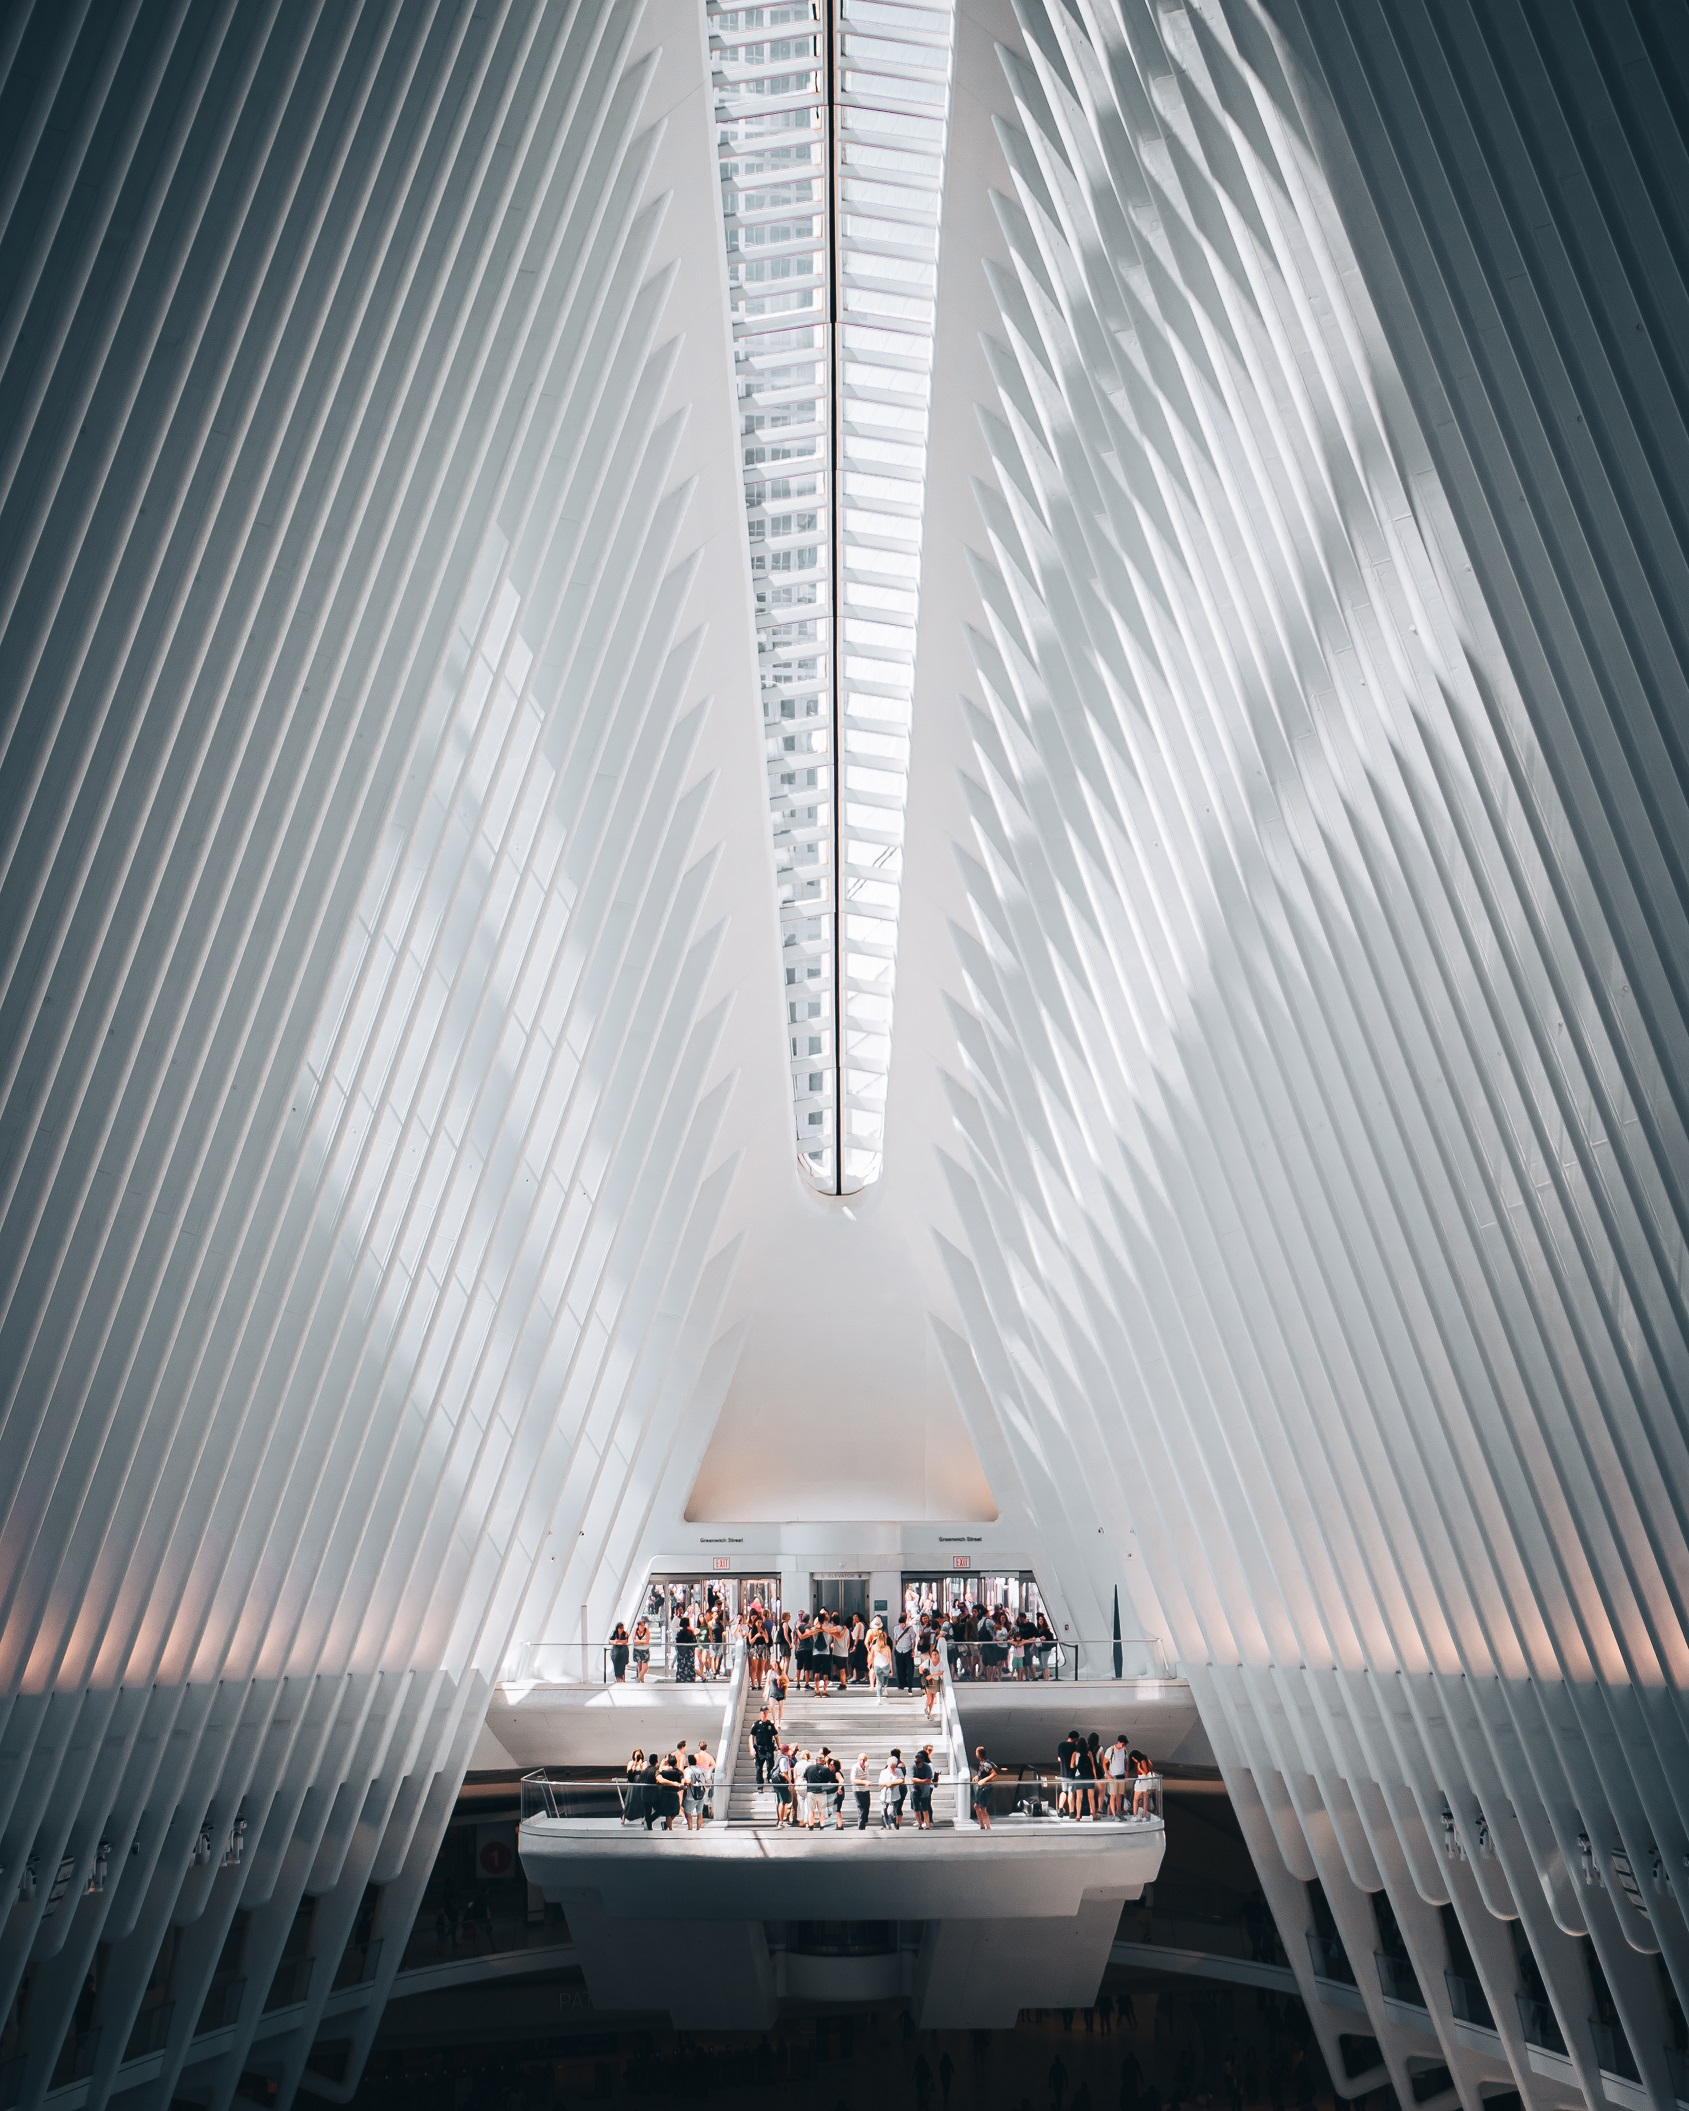 Inside the Oculus in Downtown Manhattan, New York City